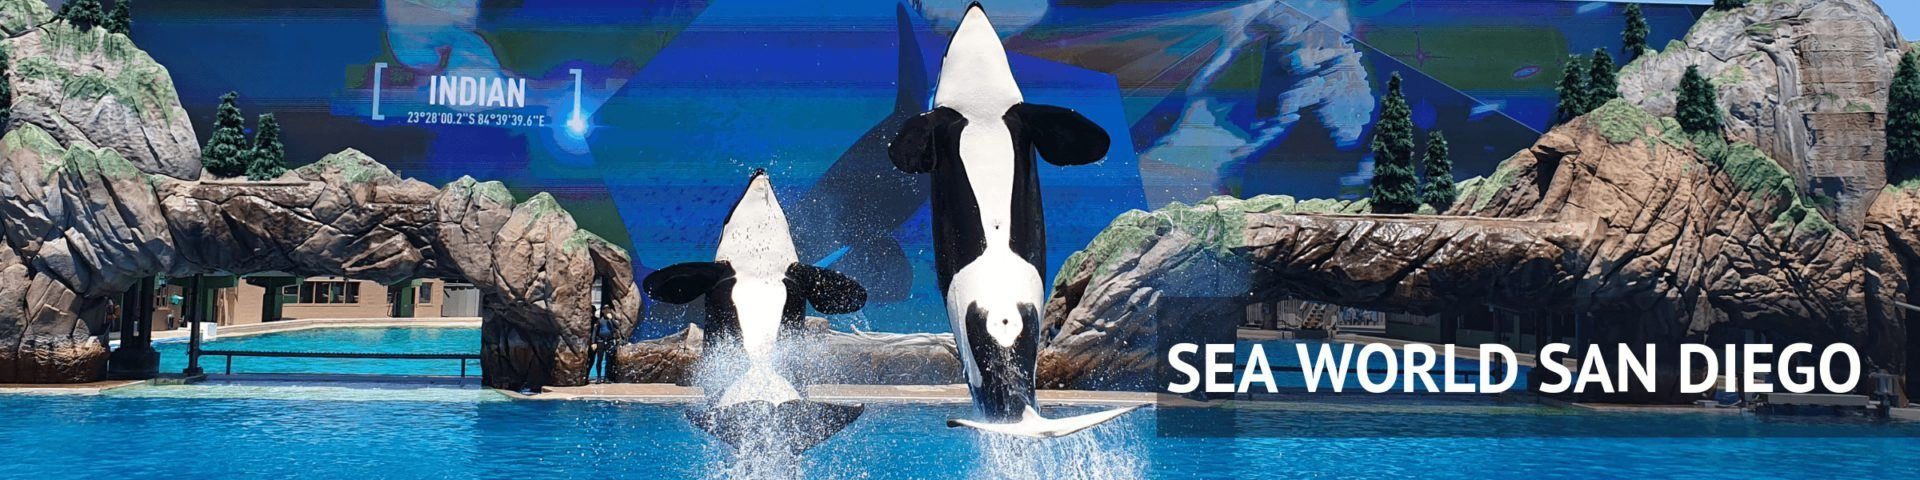 Seaworld San Diego Header